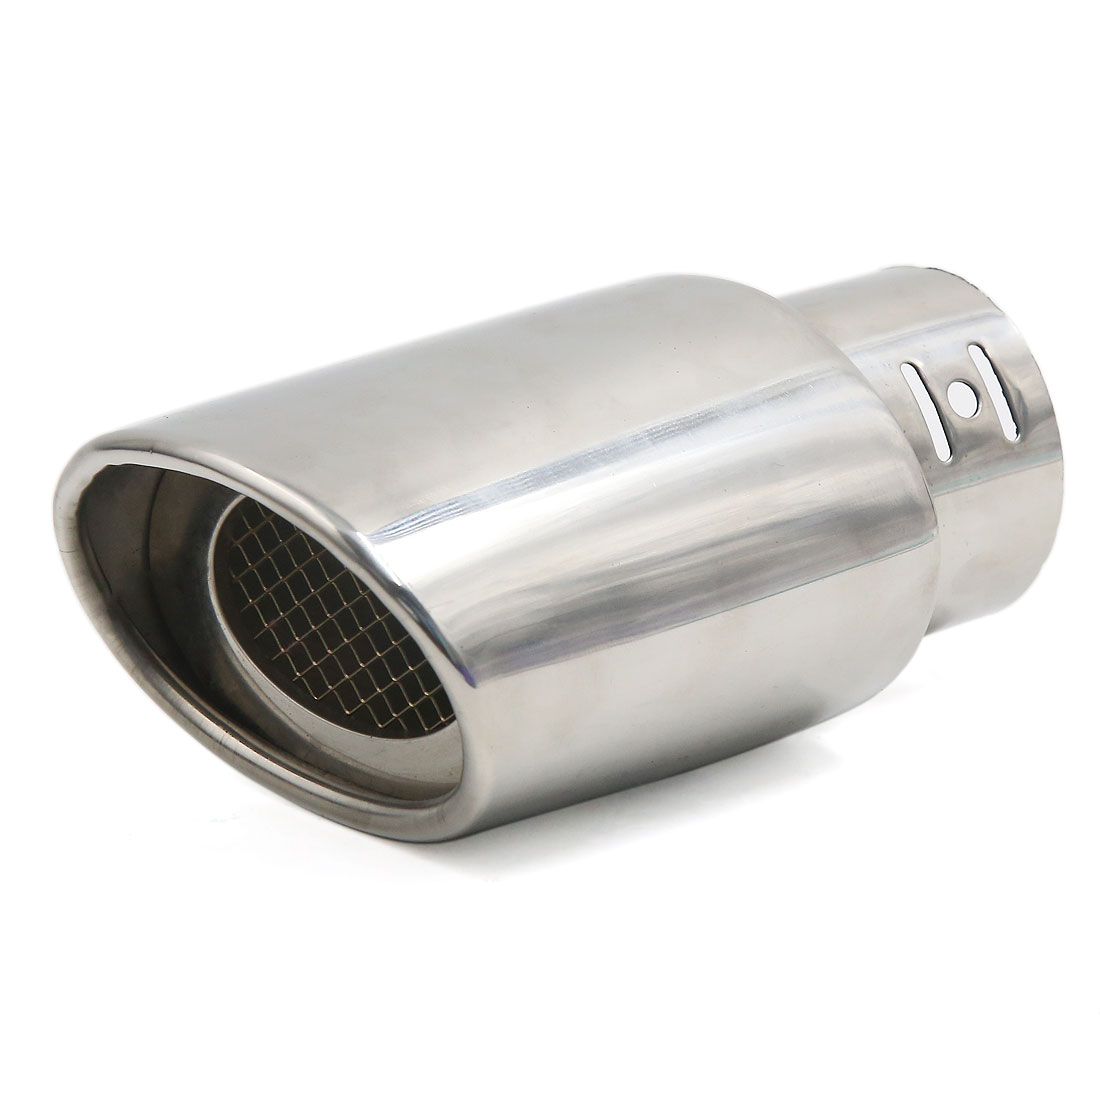 Silver Tone Stainless Steel 61mm Inlet Car Exhaust Pipe Silencer Muffler Tail Pipe